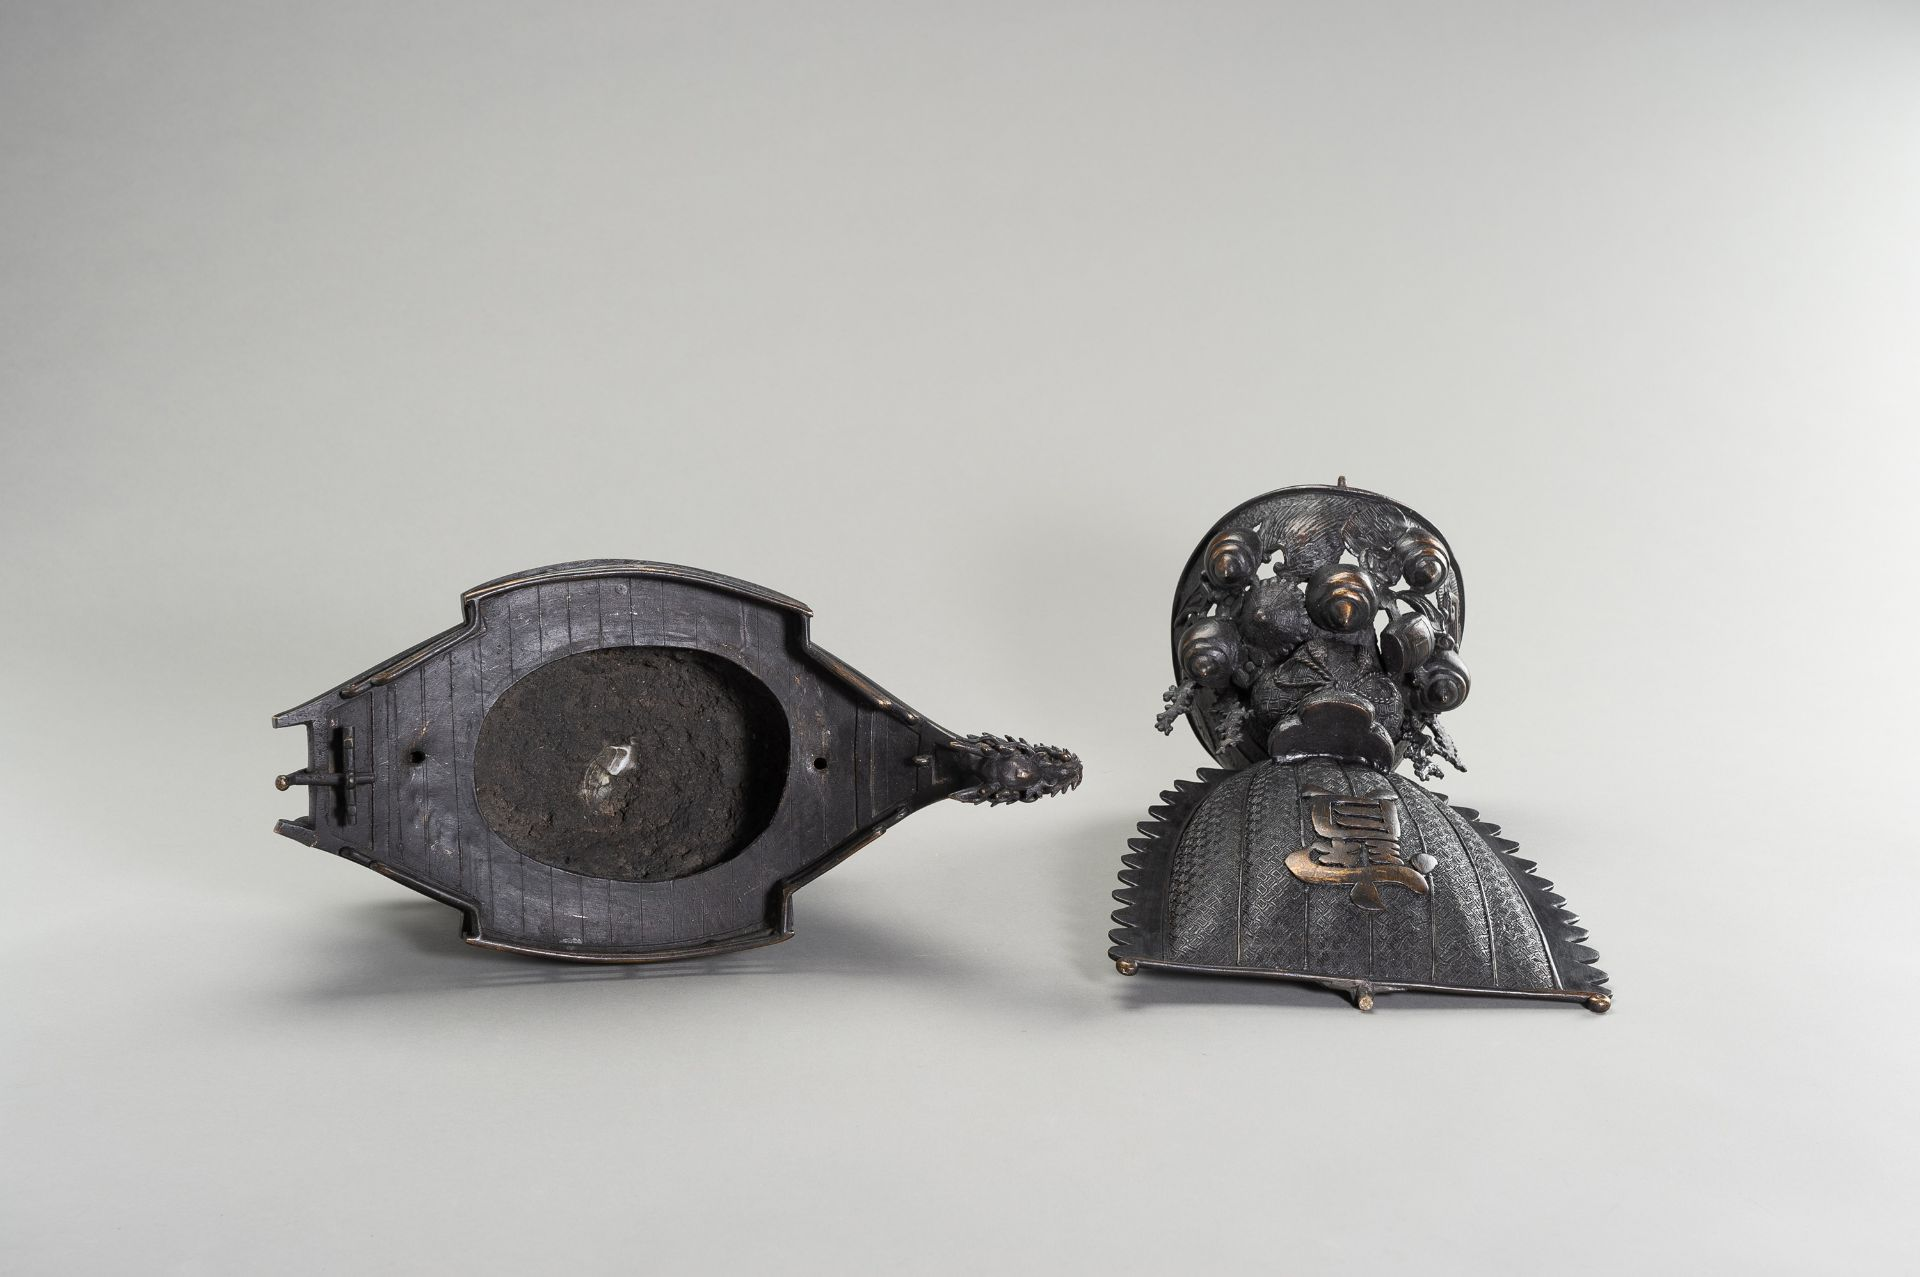 A LARGE BRONZE CENSER IN THE SHAPE OF A TREASURE SHIP - Image 10 of 13